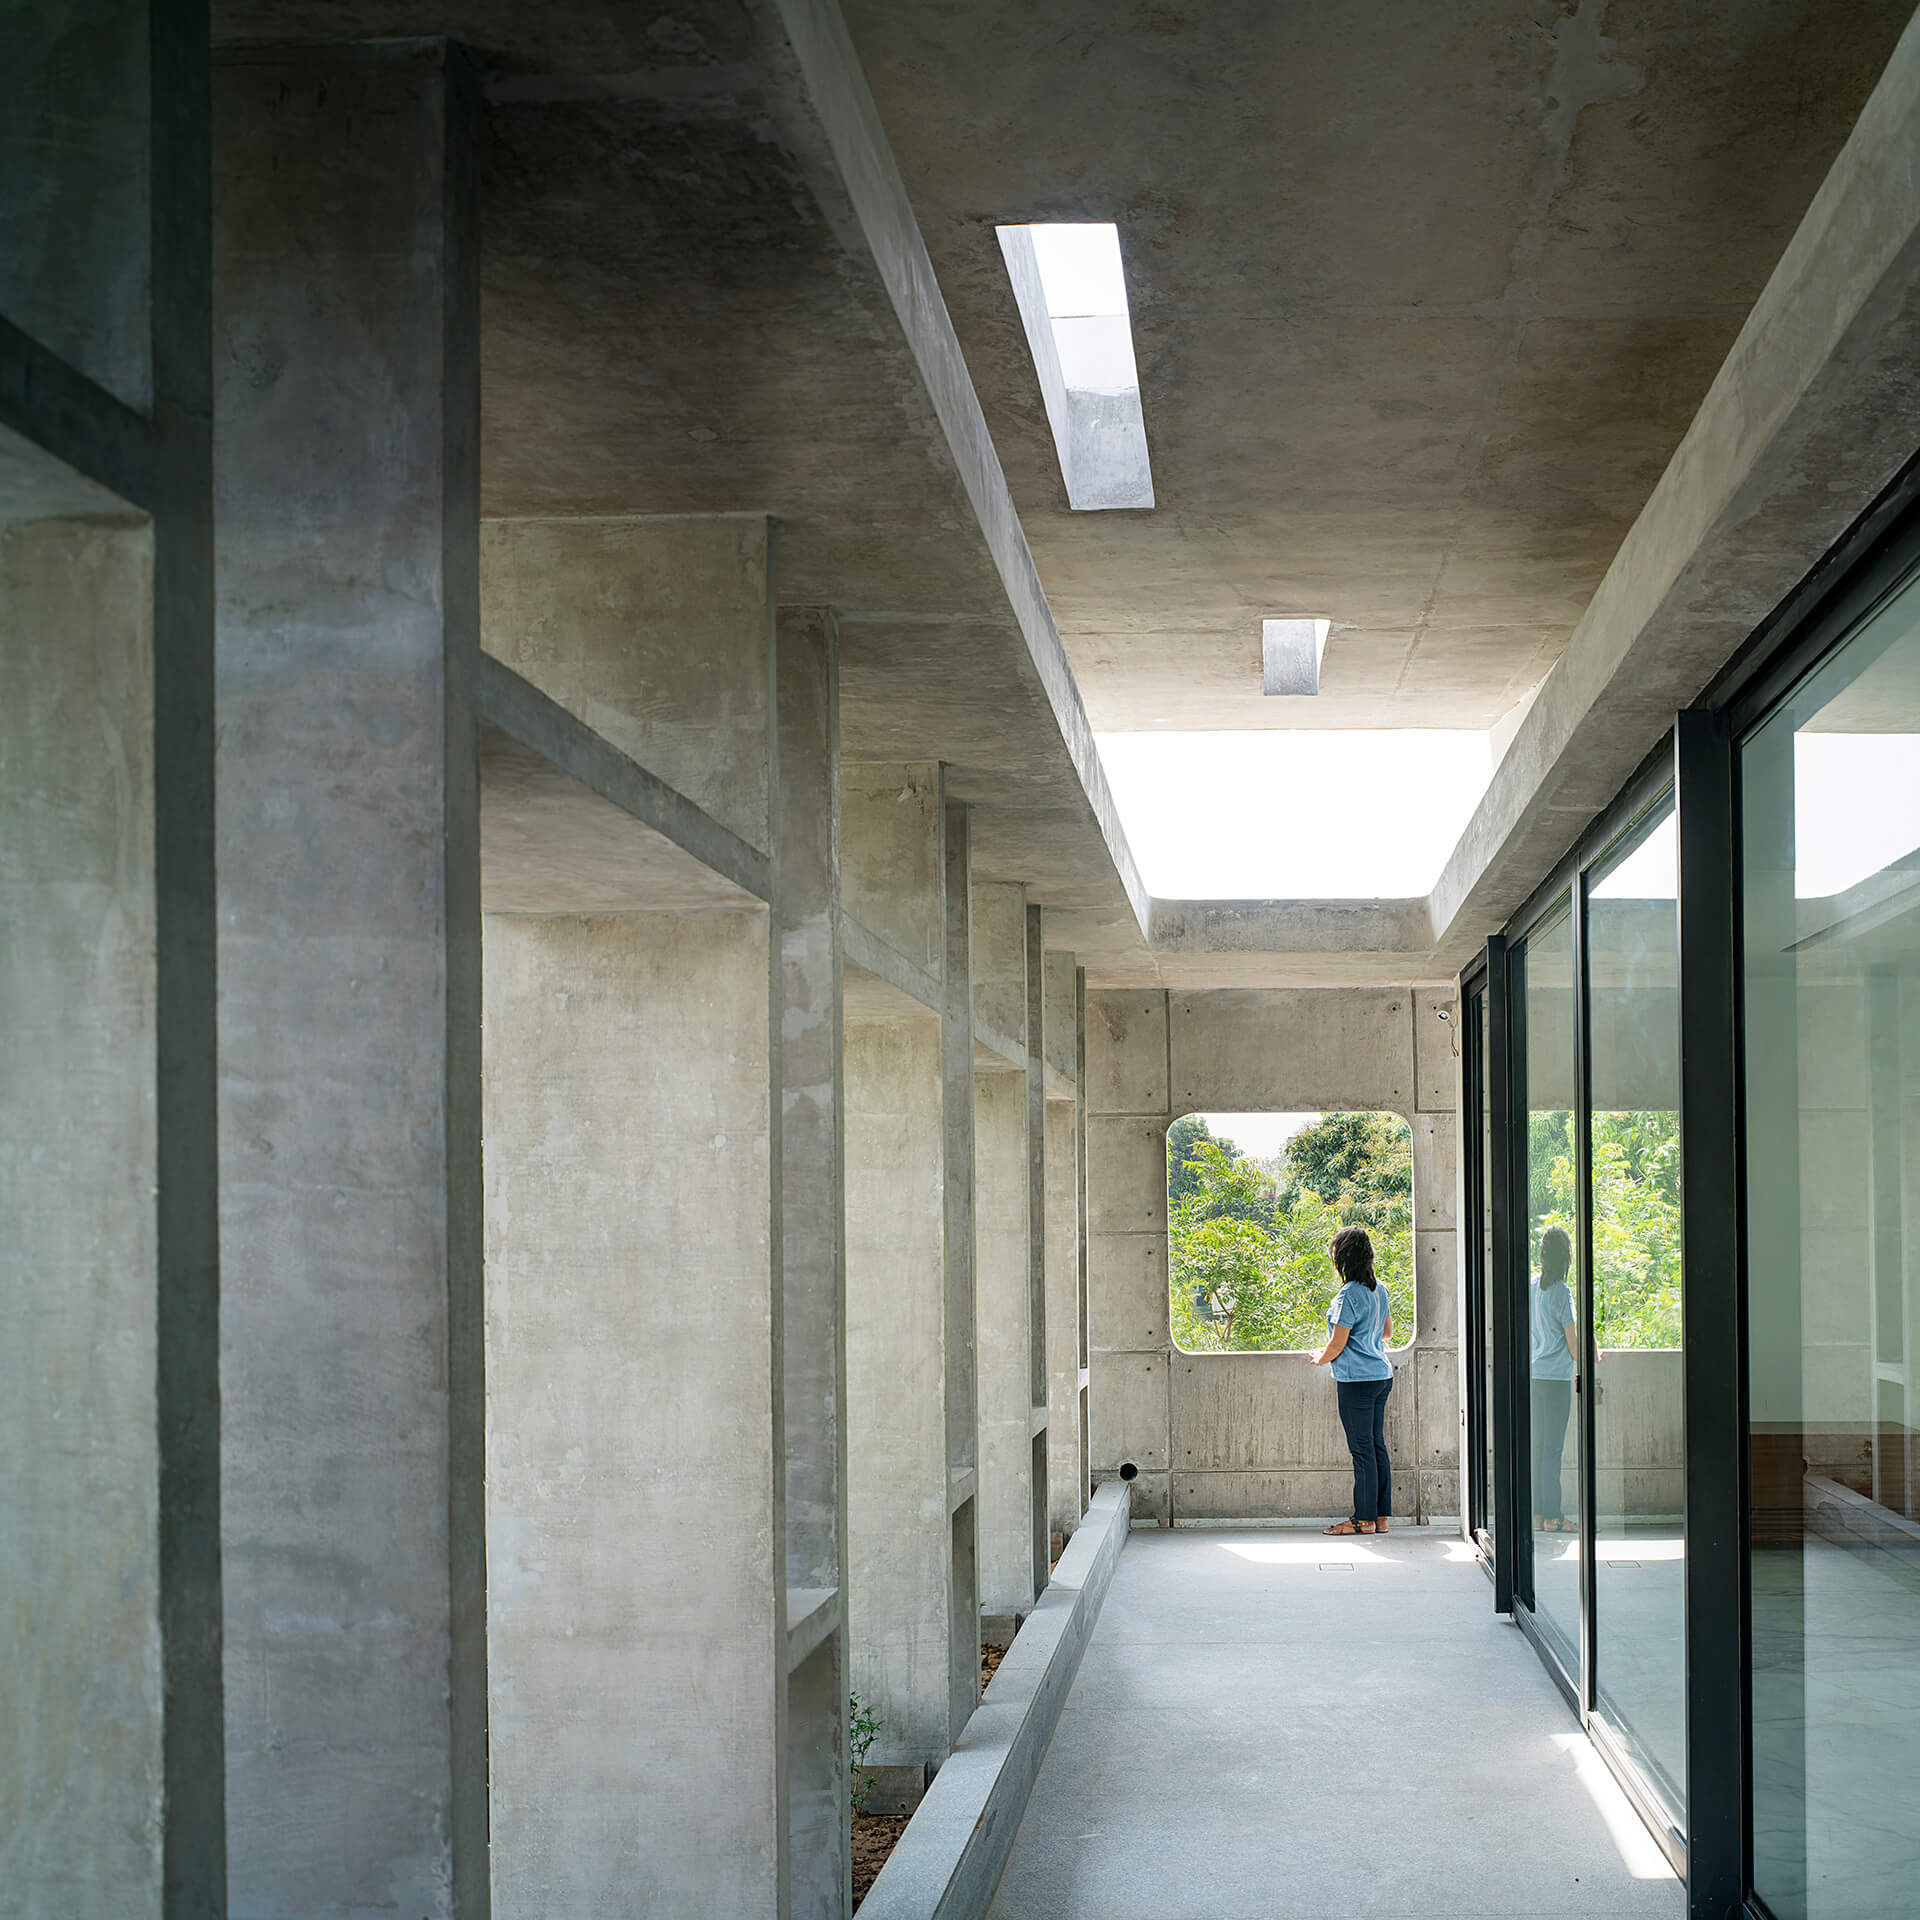 The core materiality of the house is cast-in-situ exposed concrete | Charged Voids | Chandigarh, India | STIRworld